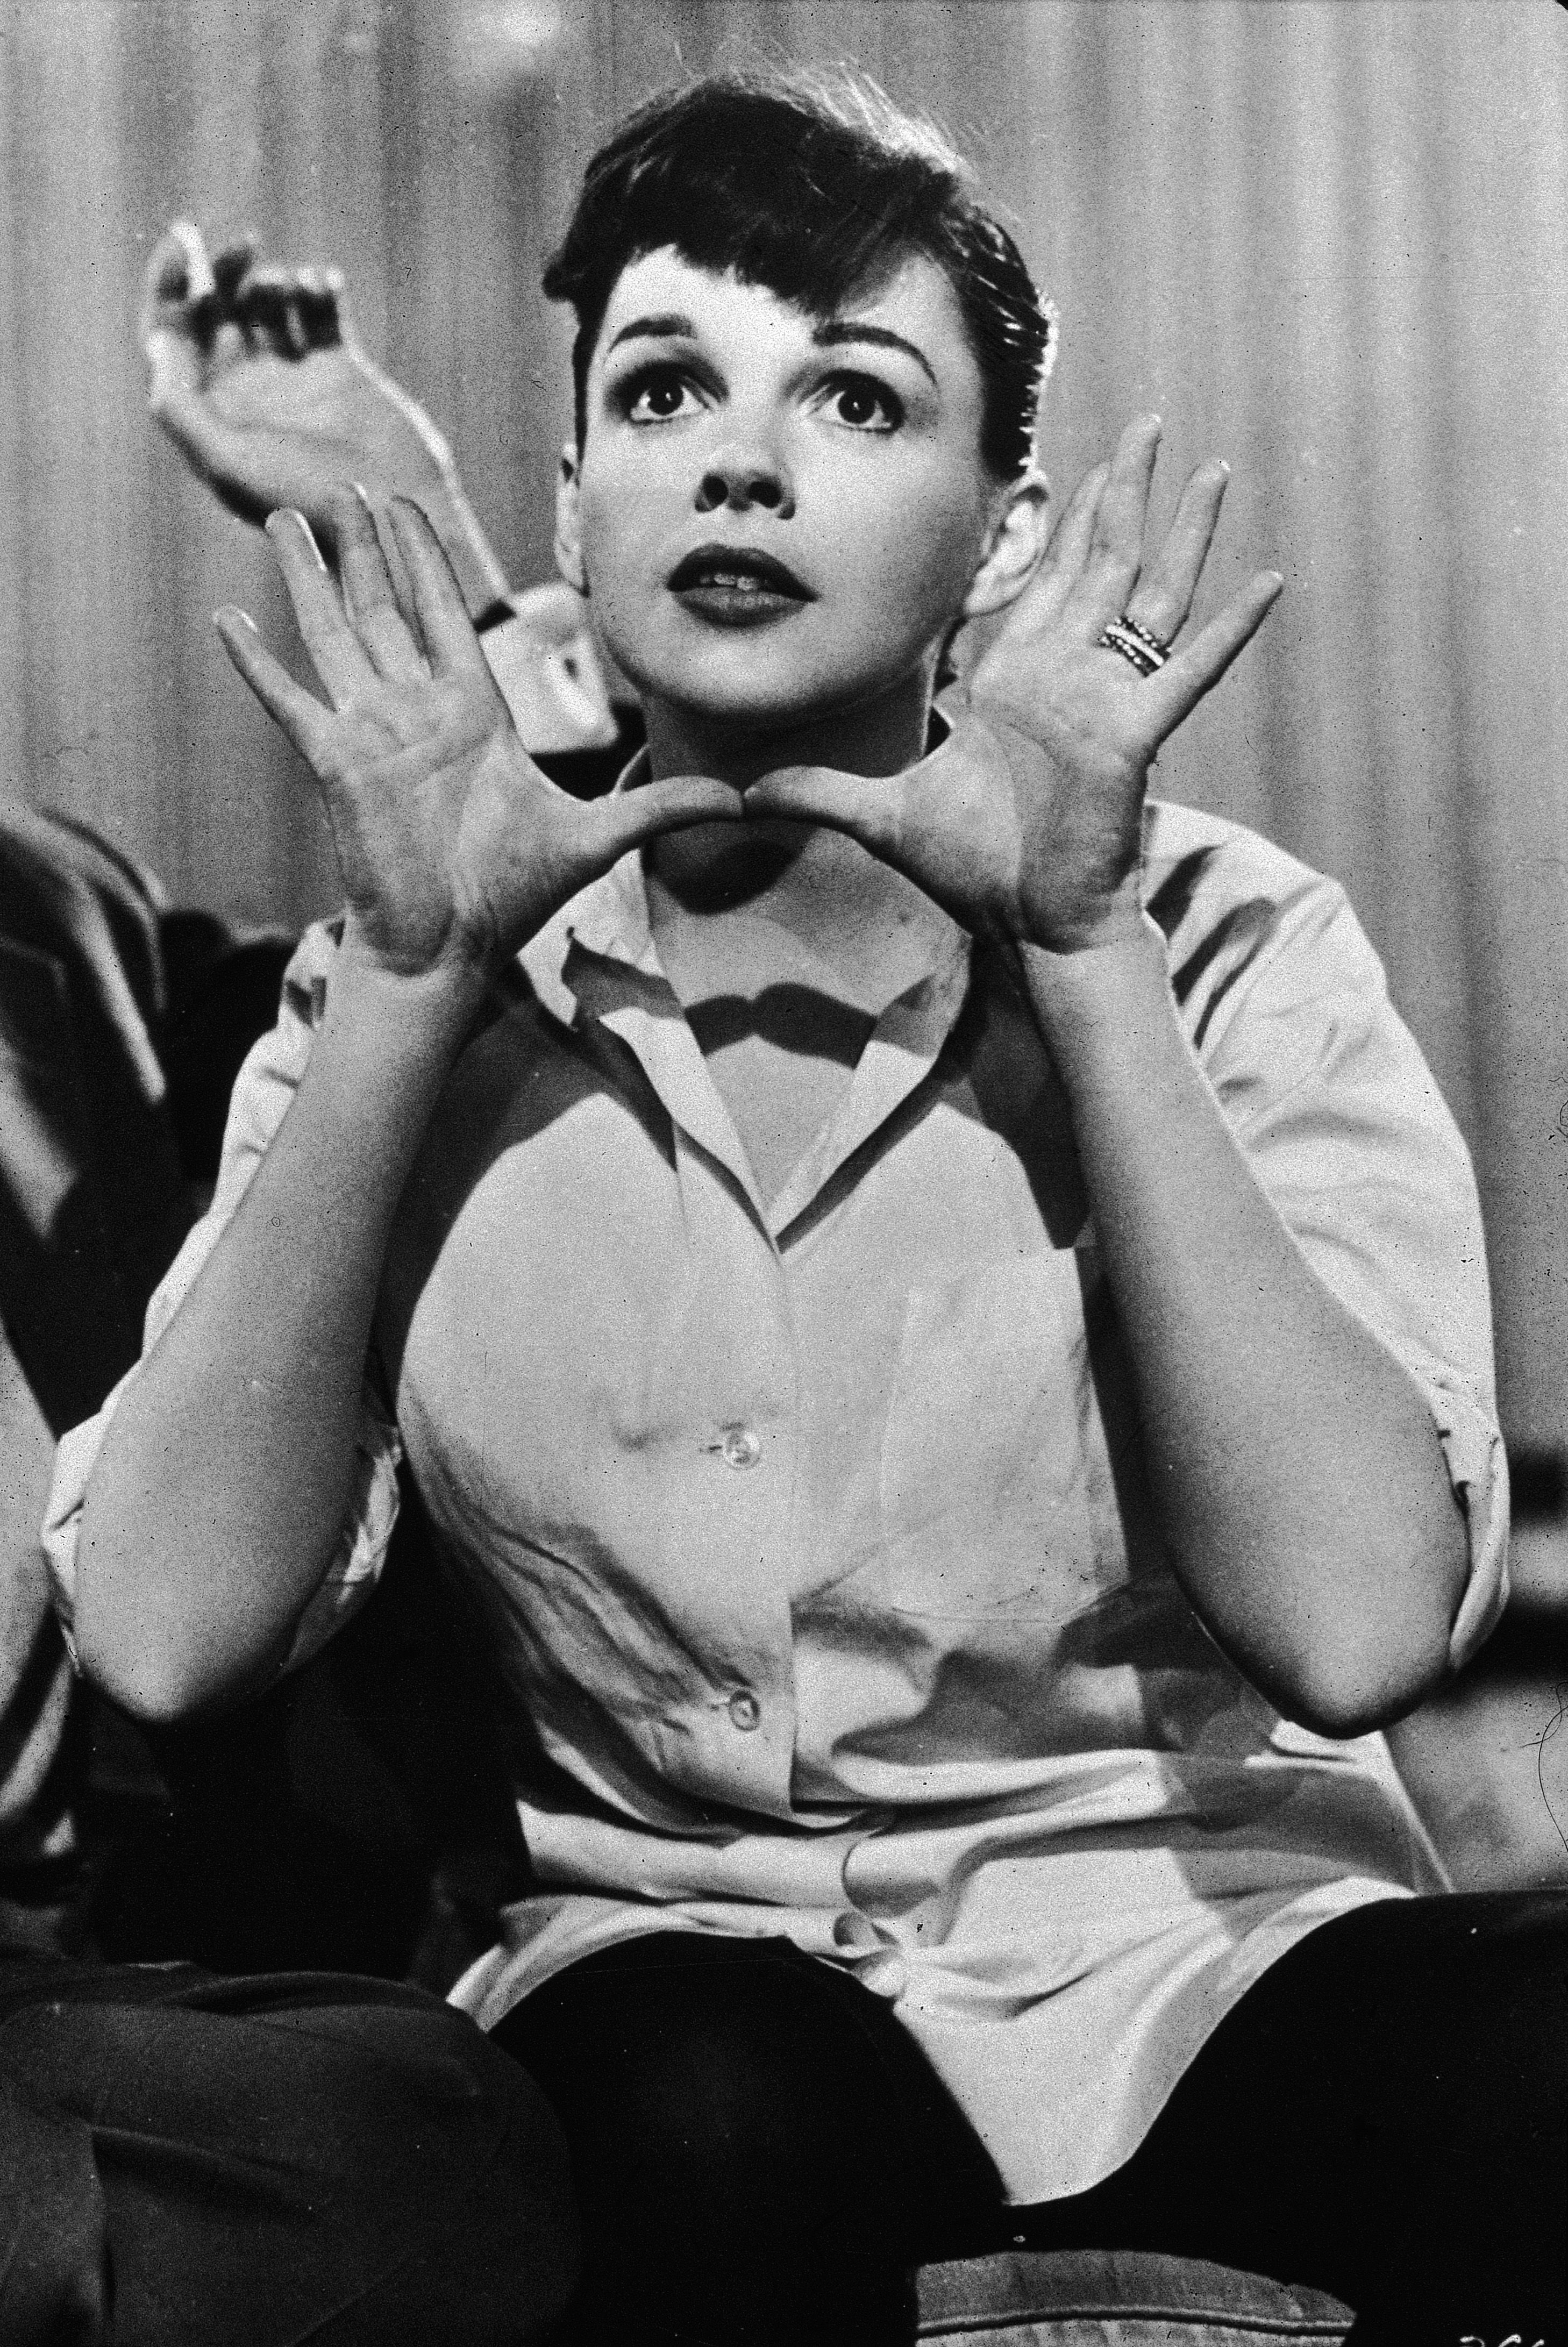 Judy Garland holds her hands up near her face, circa 1950's. | Source: Getty Images